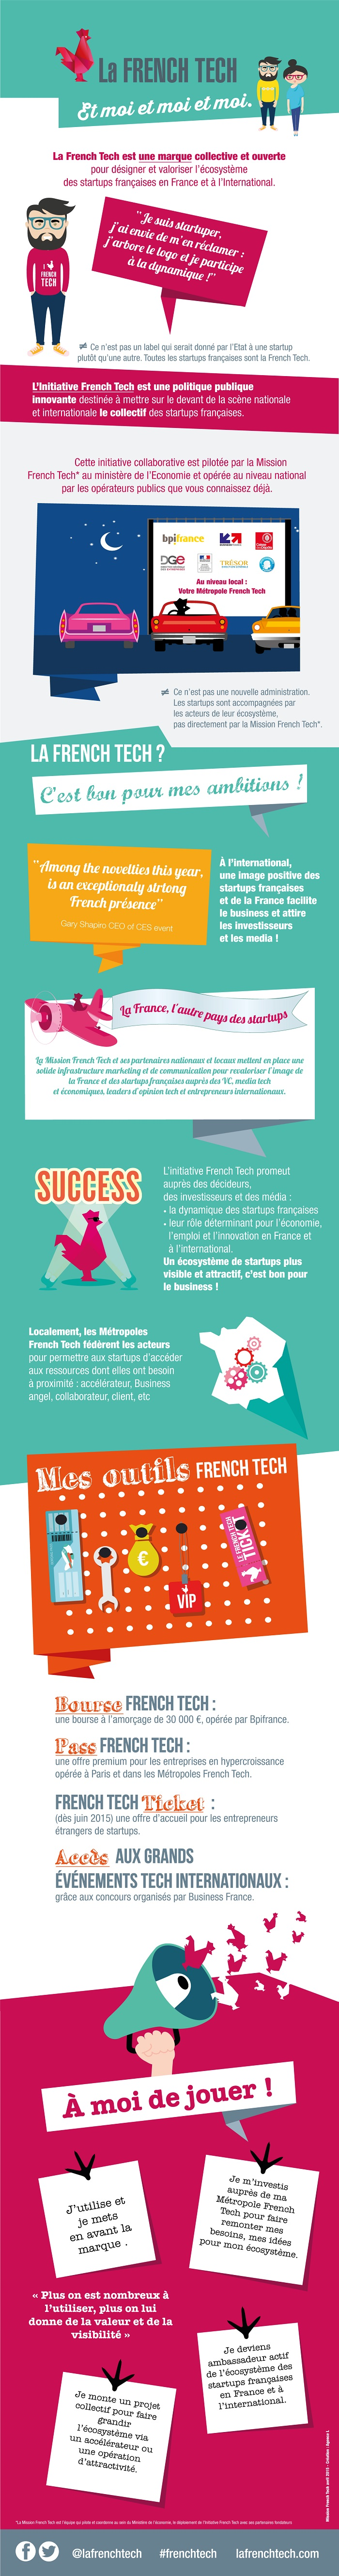 french tech-infographie